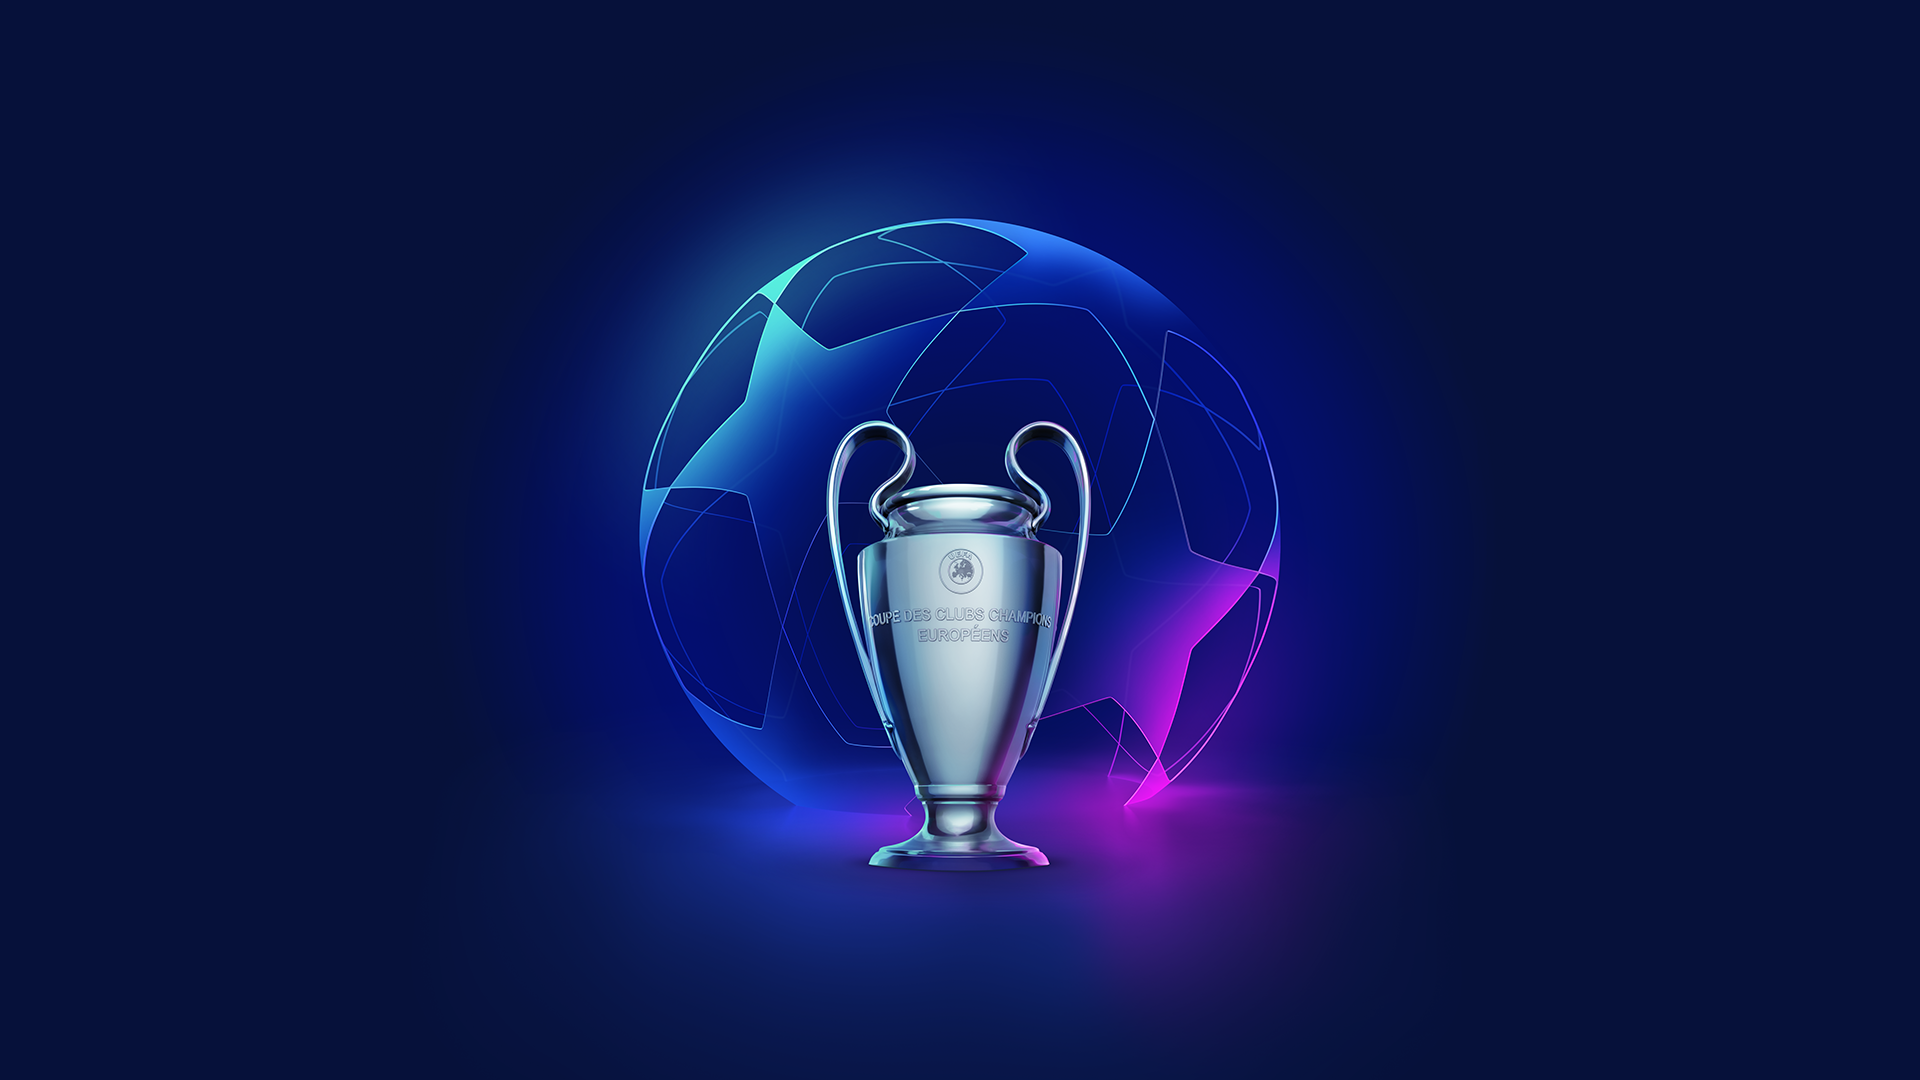 uefa champions league wallpapers top free uefa champions league backgrounds wallpaperaccess uefa champions league wallpapers top